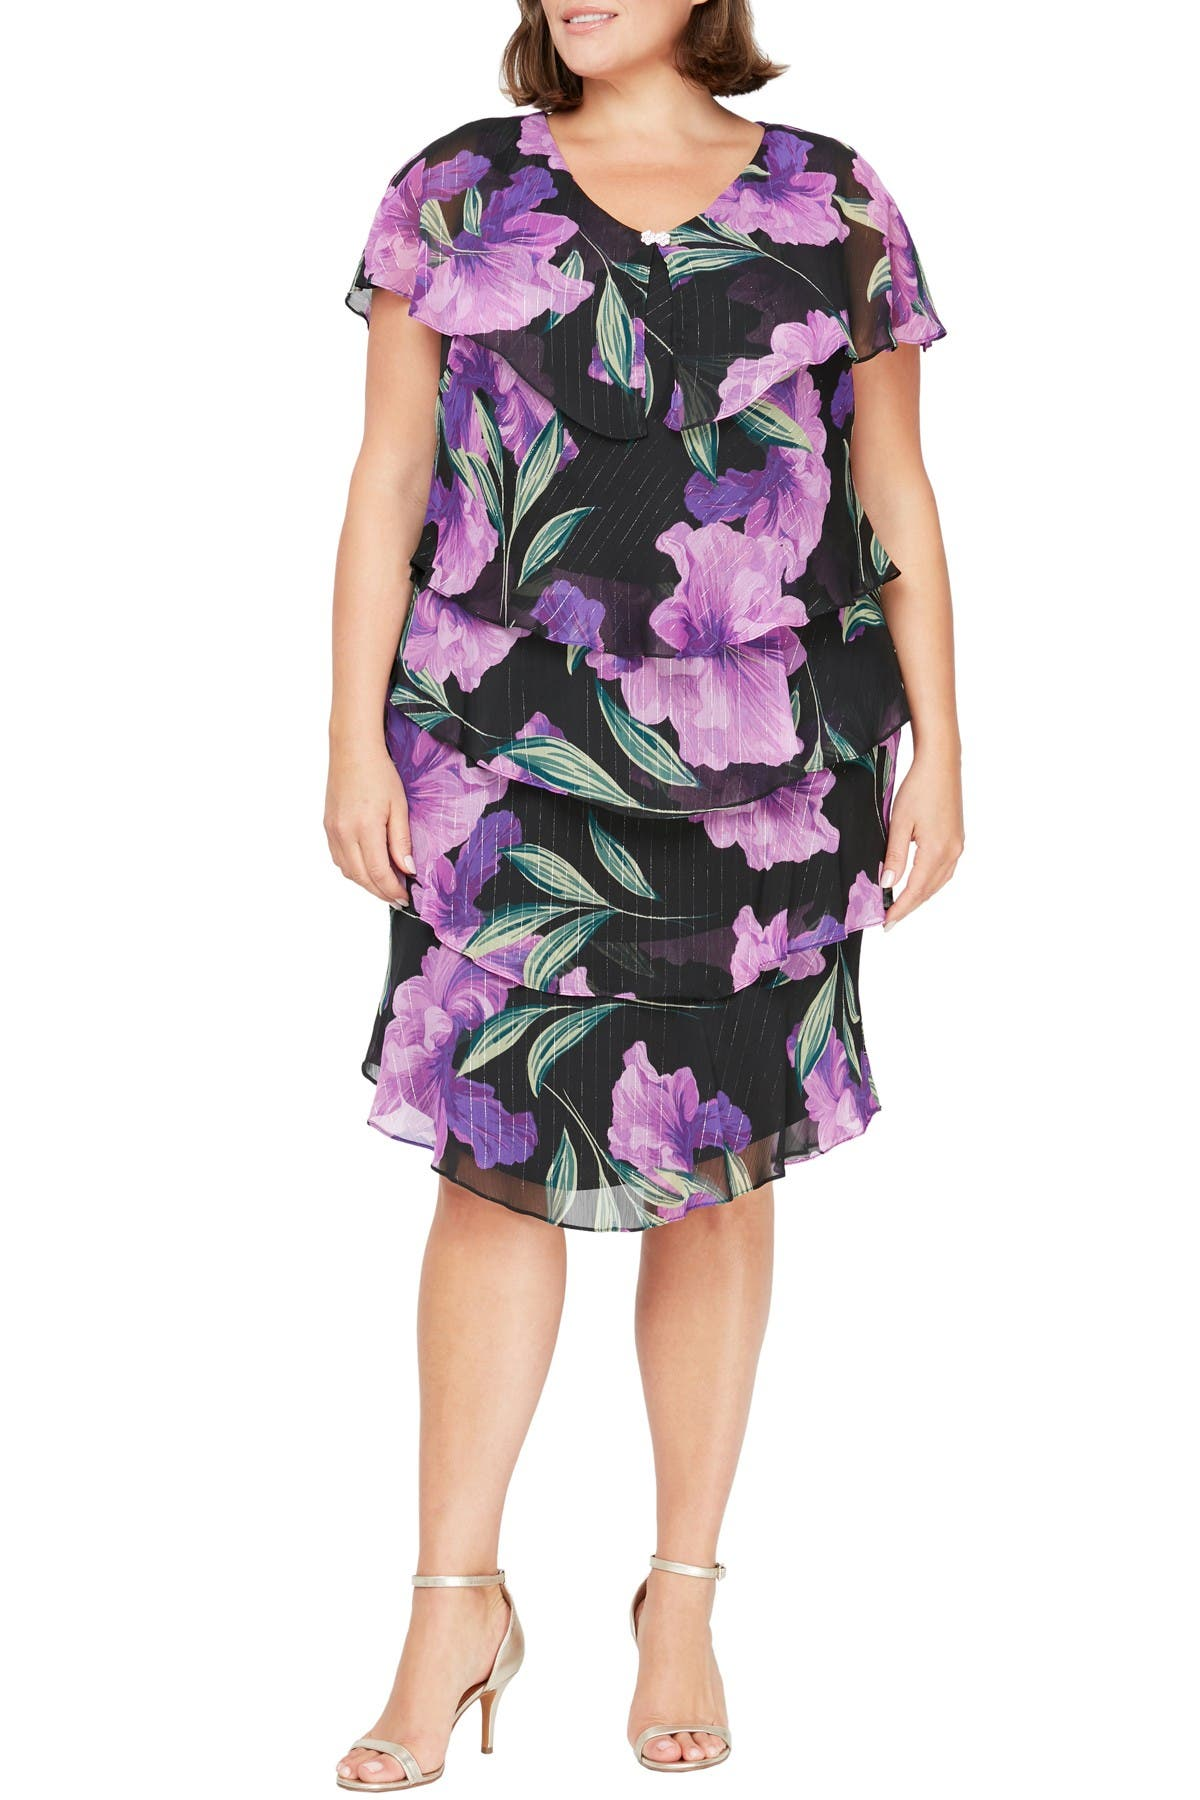 Image of SLNY Floral Tiered Dress